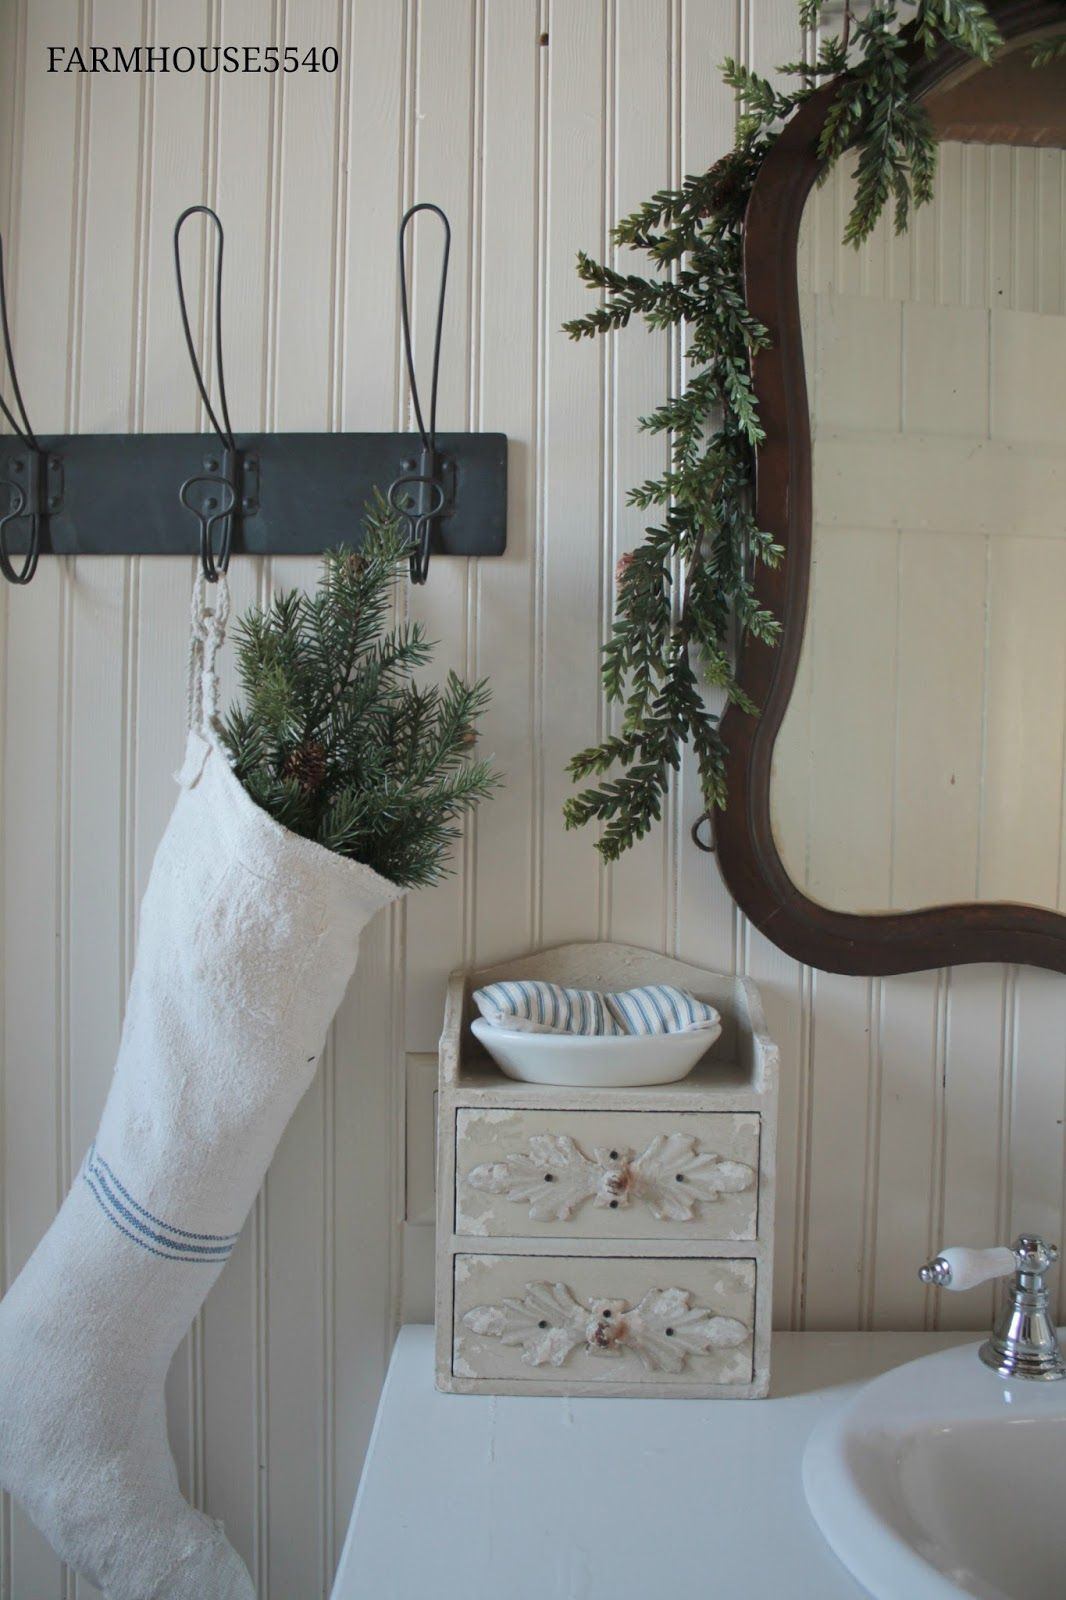 Farmhouse Christmas Bathroom via farmhouse5540 #ChristmasDecor #ChristmasBathroom